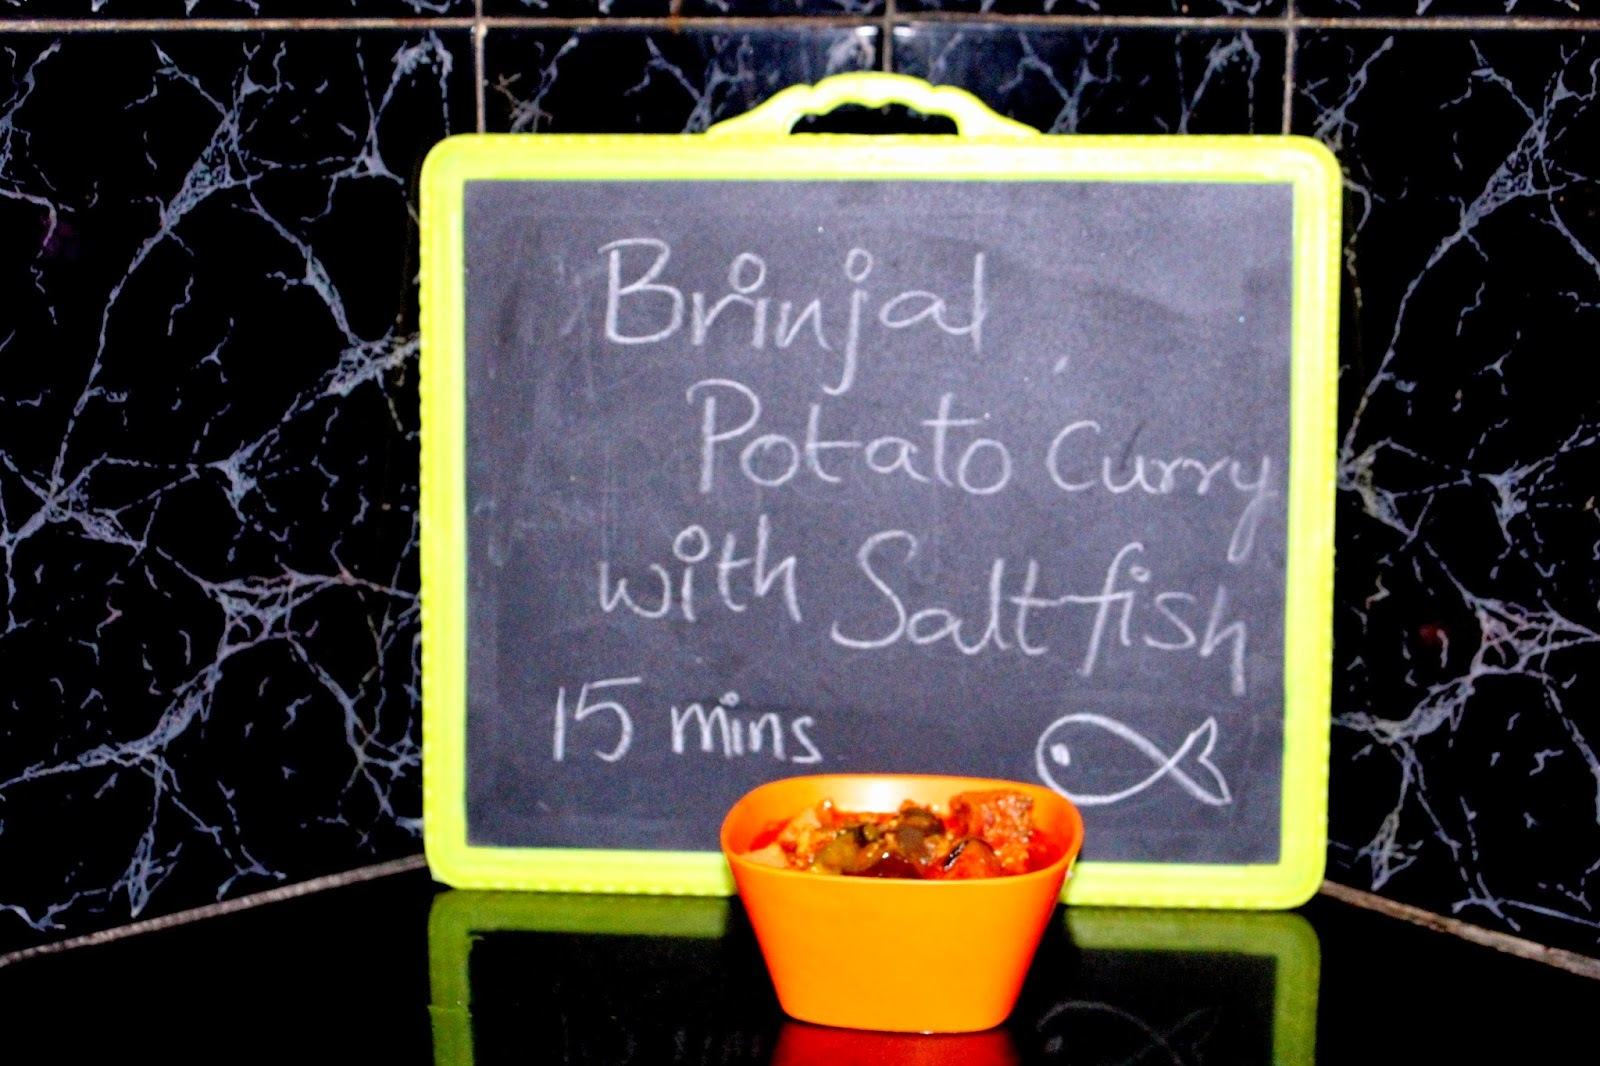 Brinjal and Potato curry with Salt fish